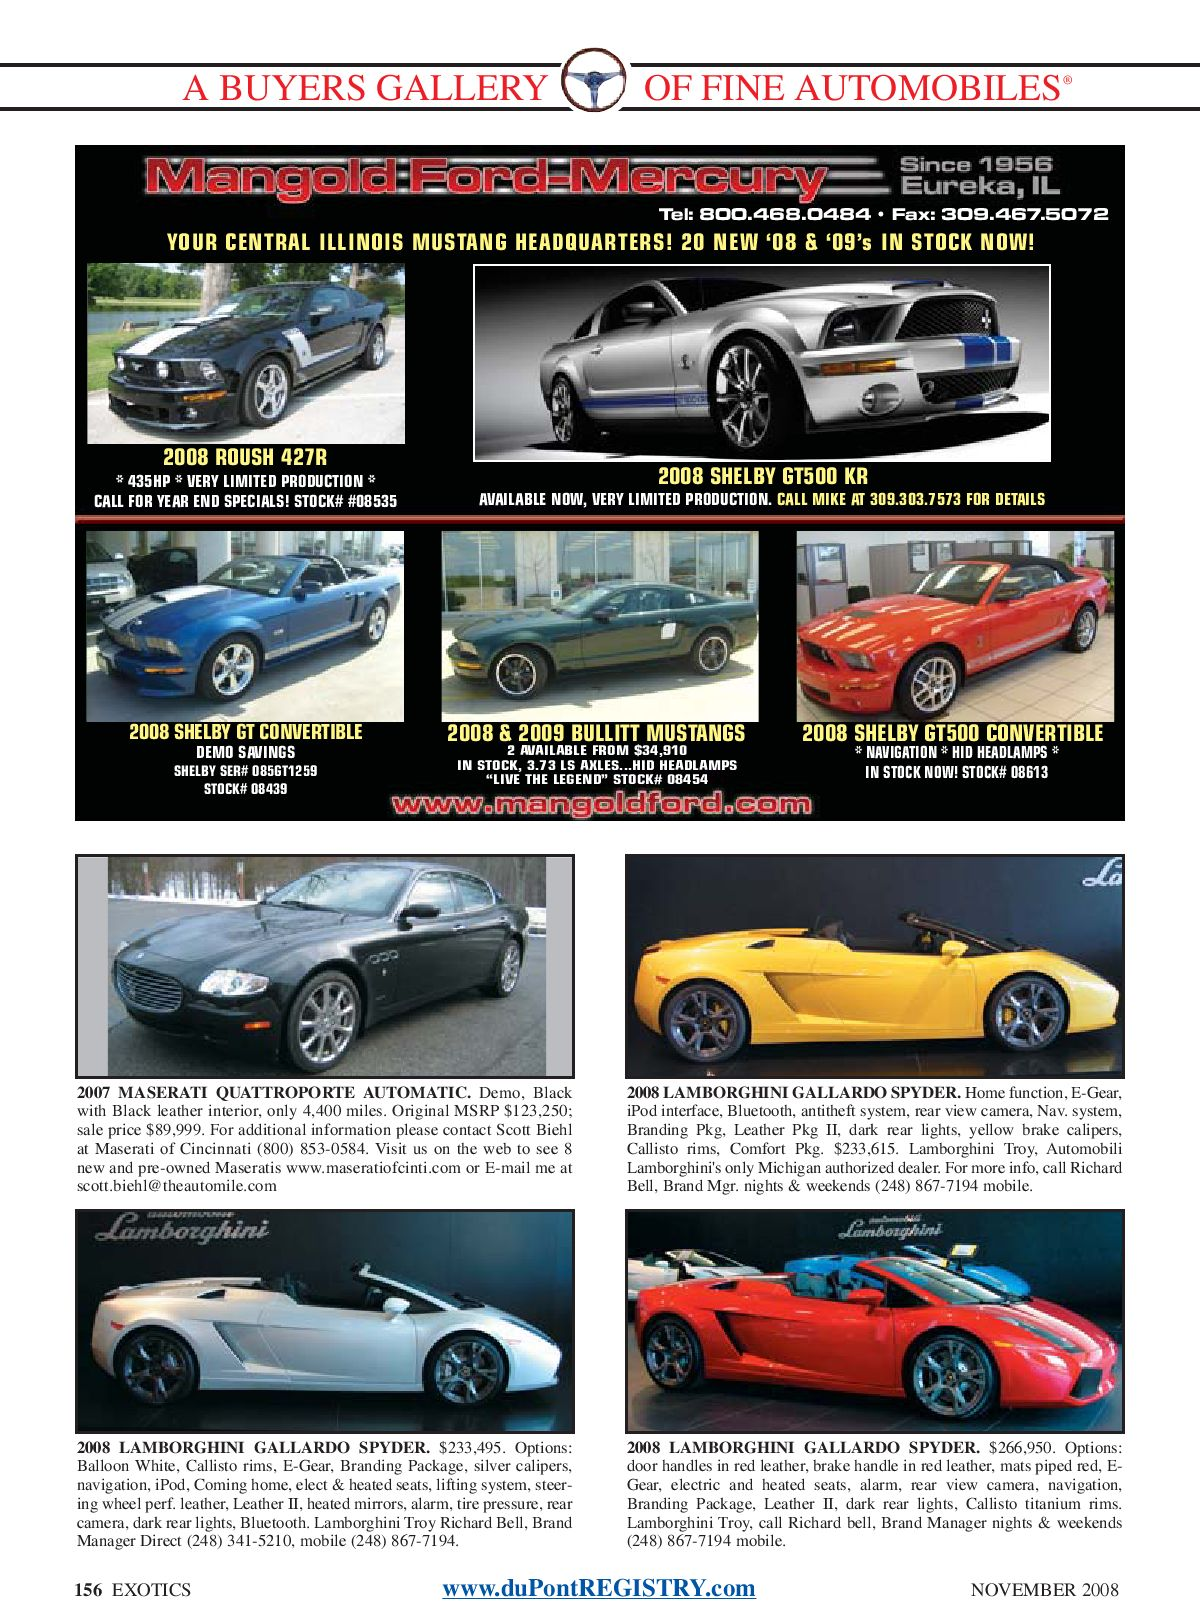 duPontREGISTRY Autos November 2008 by duPont REGISTRY - issuu